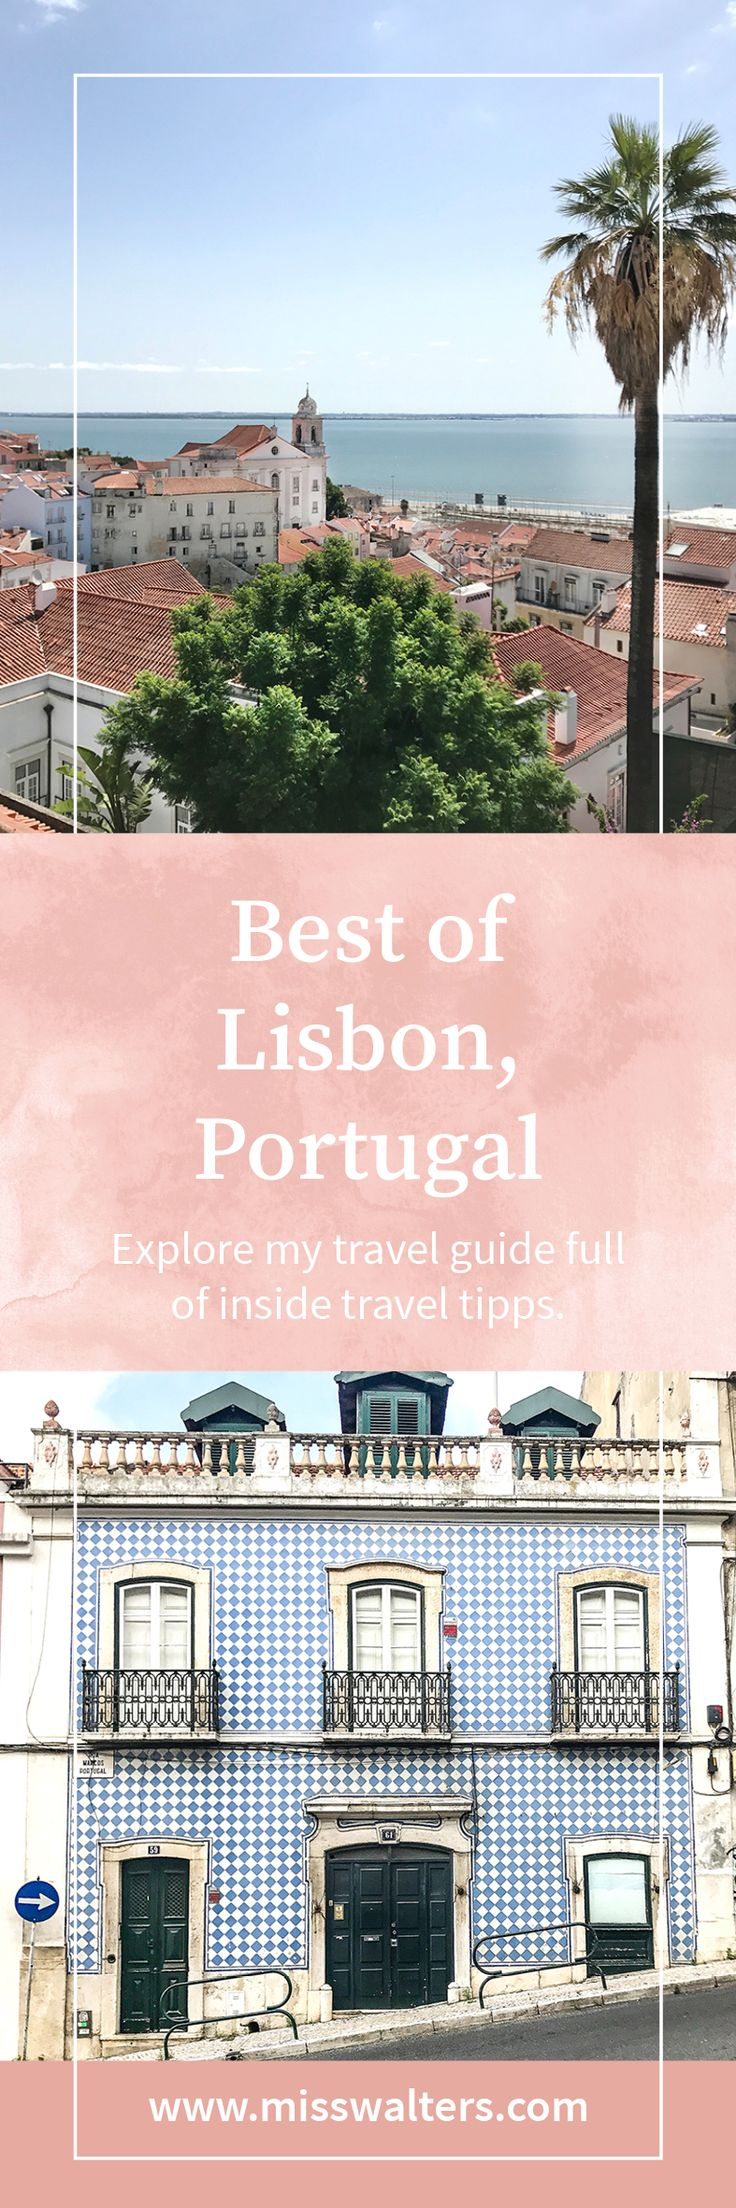 Explore my travel guide for Lisbon, Portugal. Full of inside travel tipps for mindful explorers.